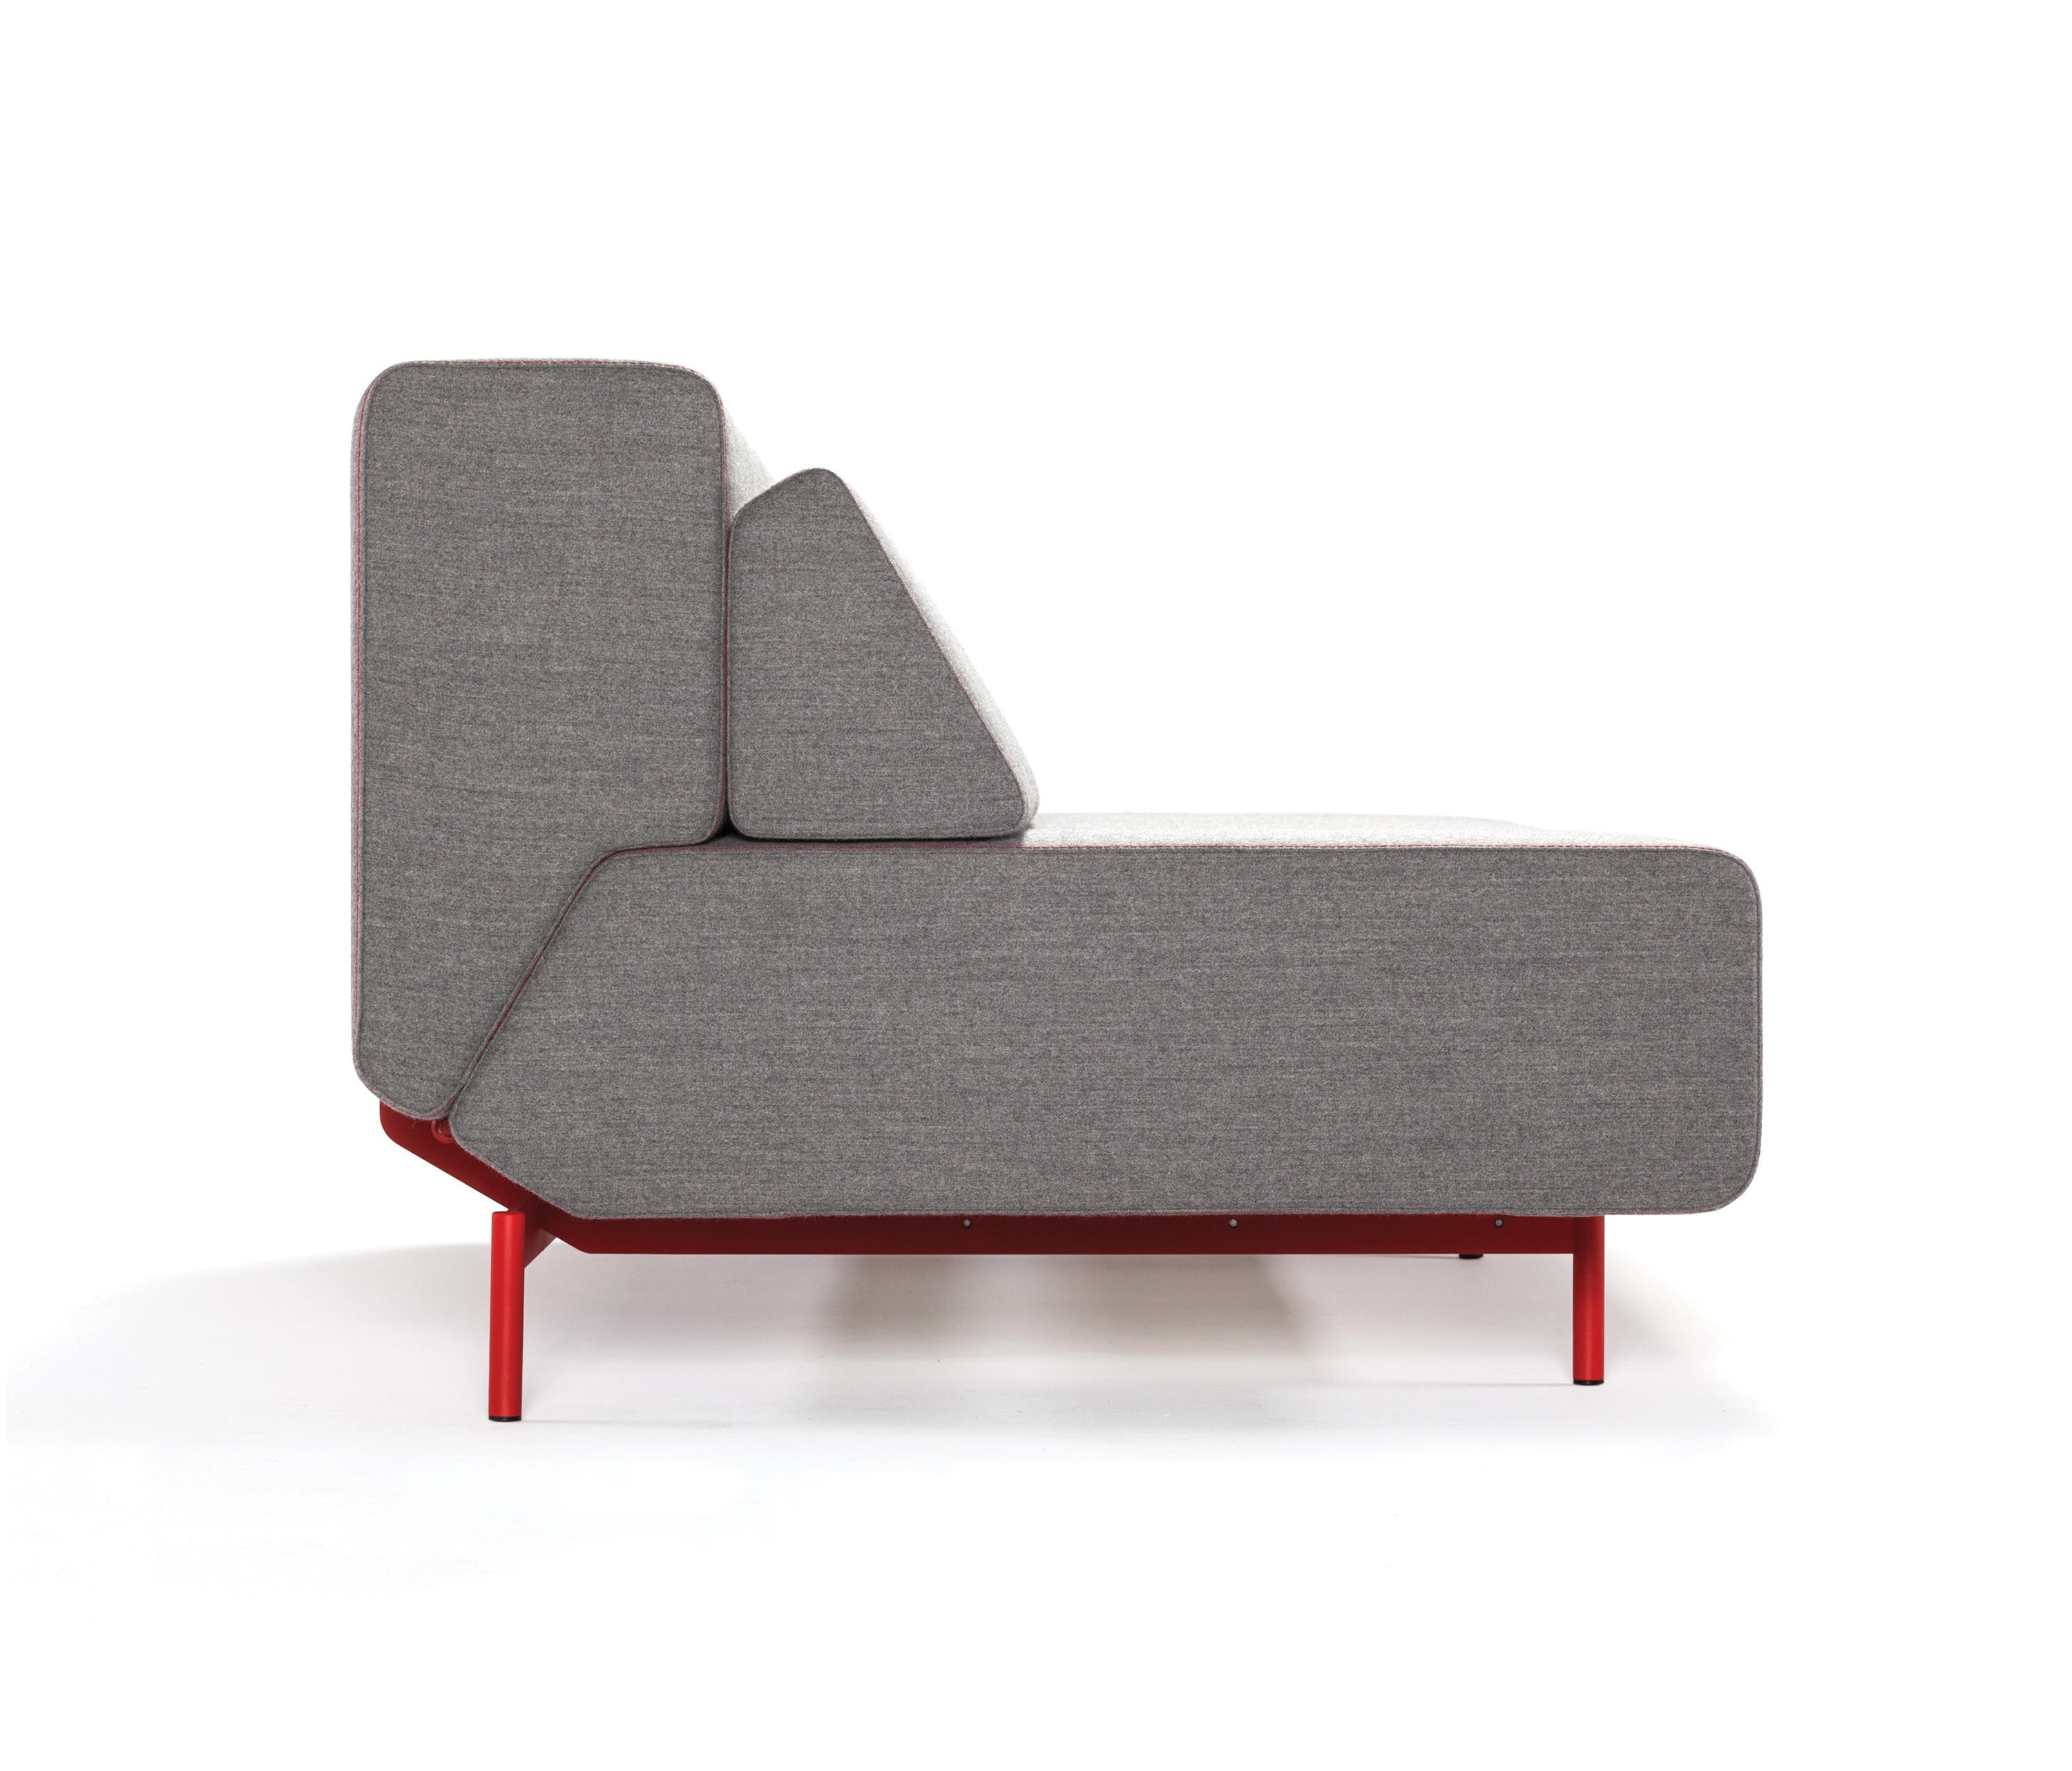 ... Pil Low Sofabed By Prostoria | Sofa Beds ...